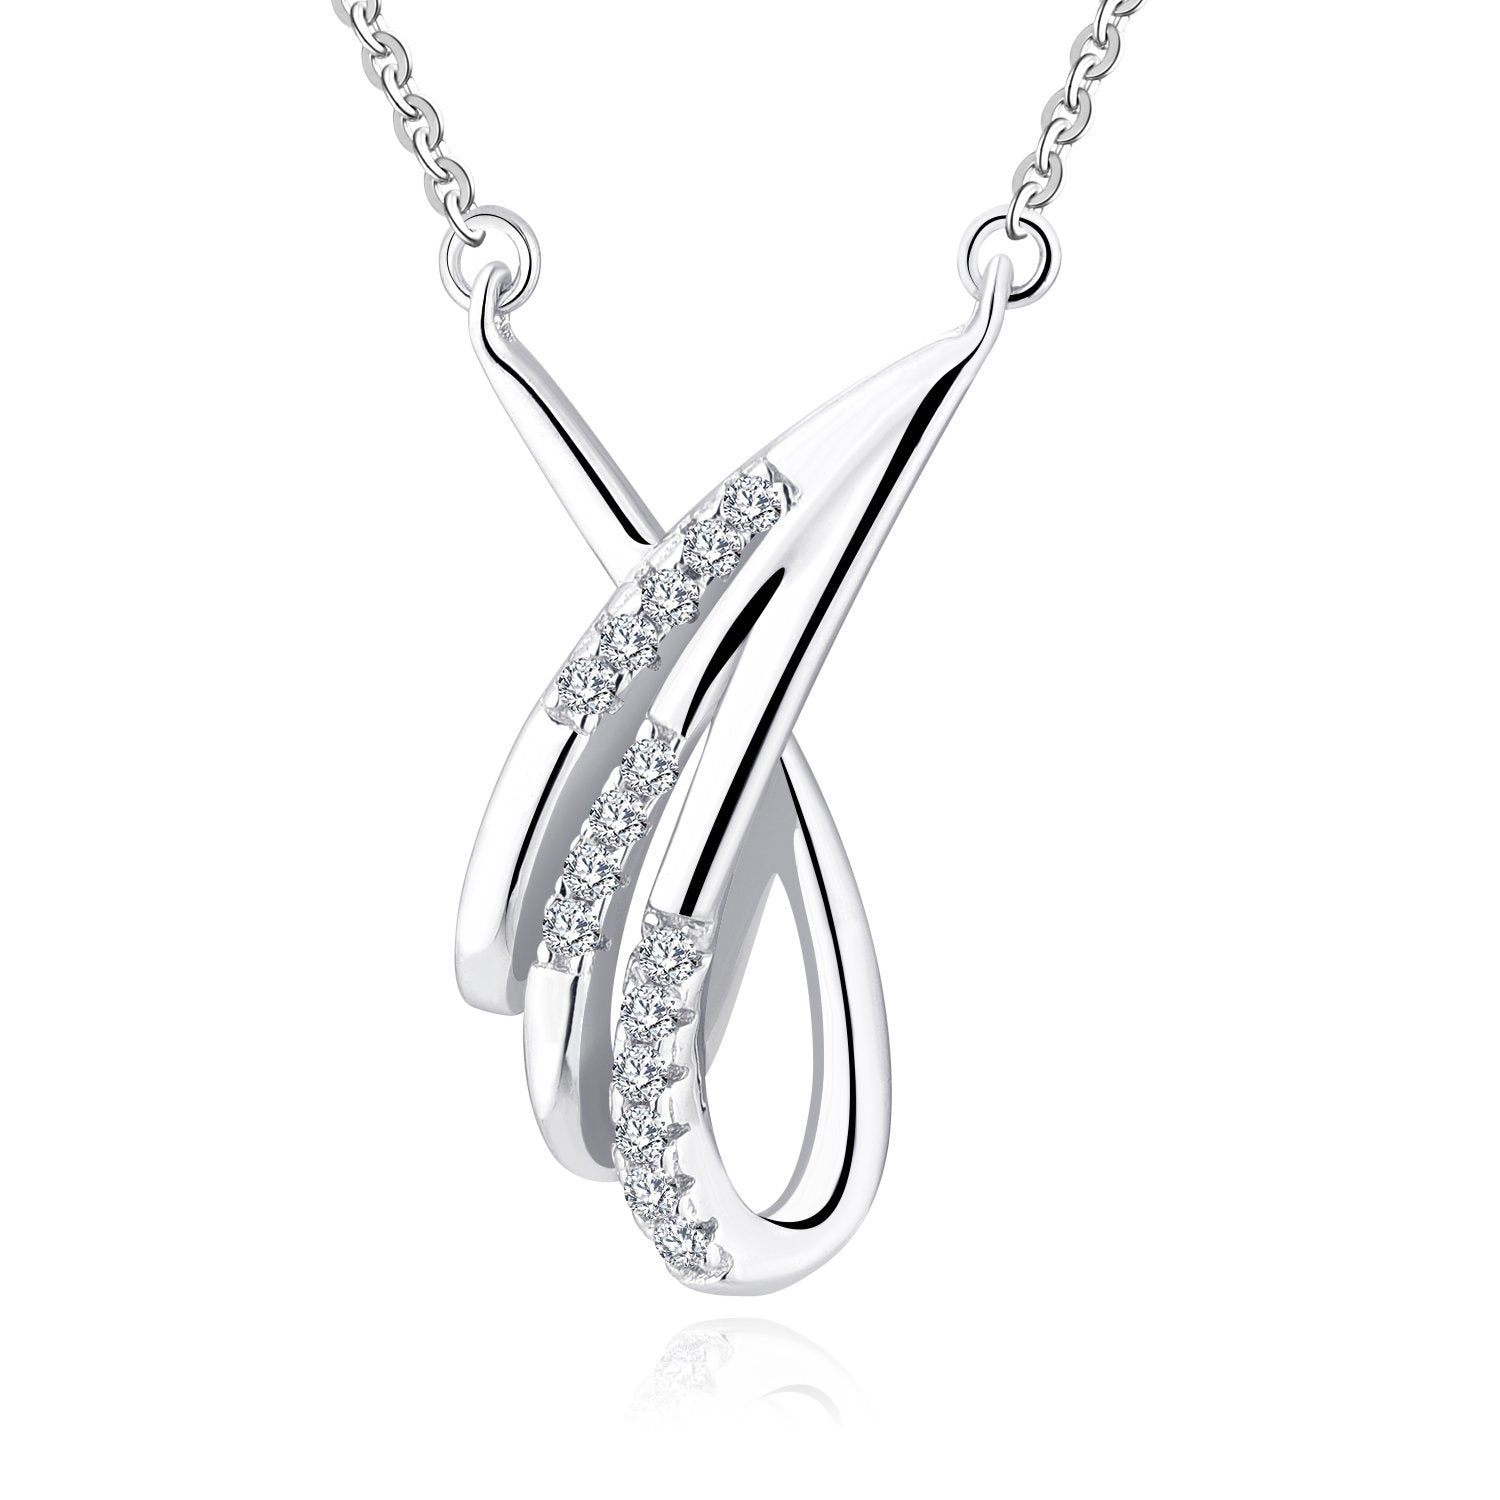 Farjary Jewelry Women's Fashion 9K White Gold Angle Wing with 3 Line Diamond